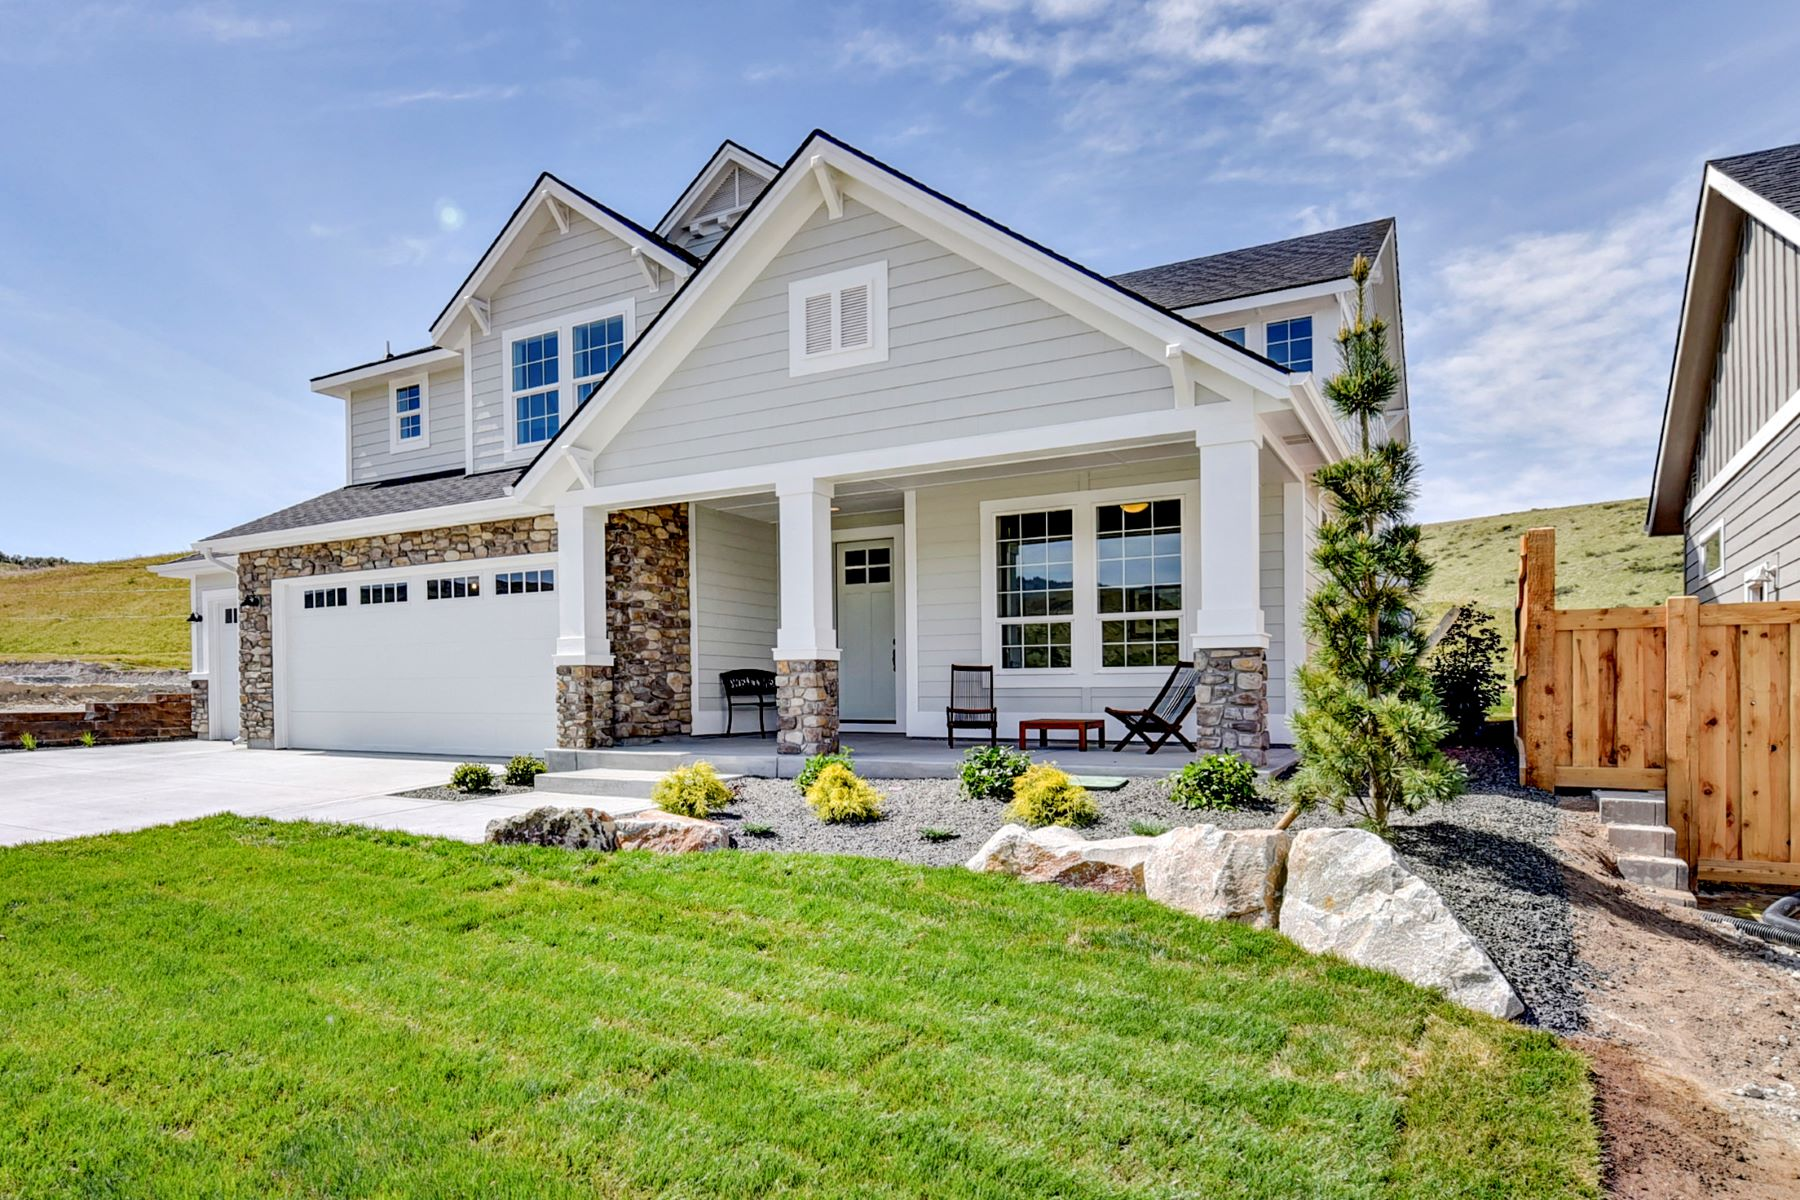 Single Family Homes for Sale at 3630 Miners Farm Dr, Boise 3630 W Miners Farm Dr Boise, Idaho 83714 United States